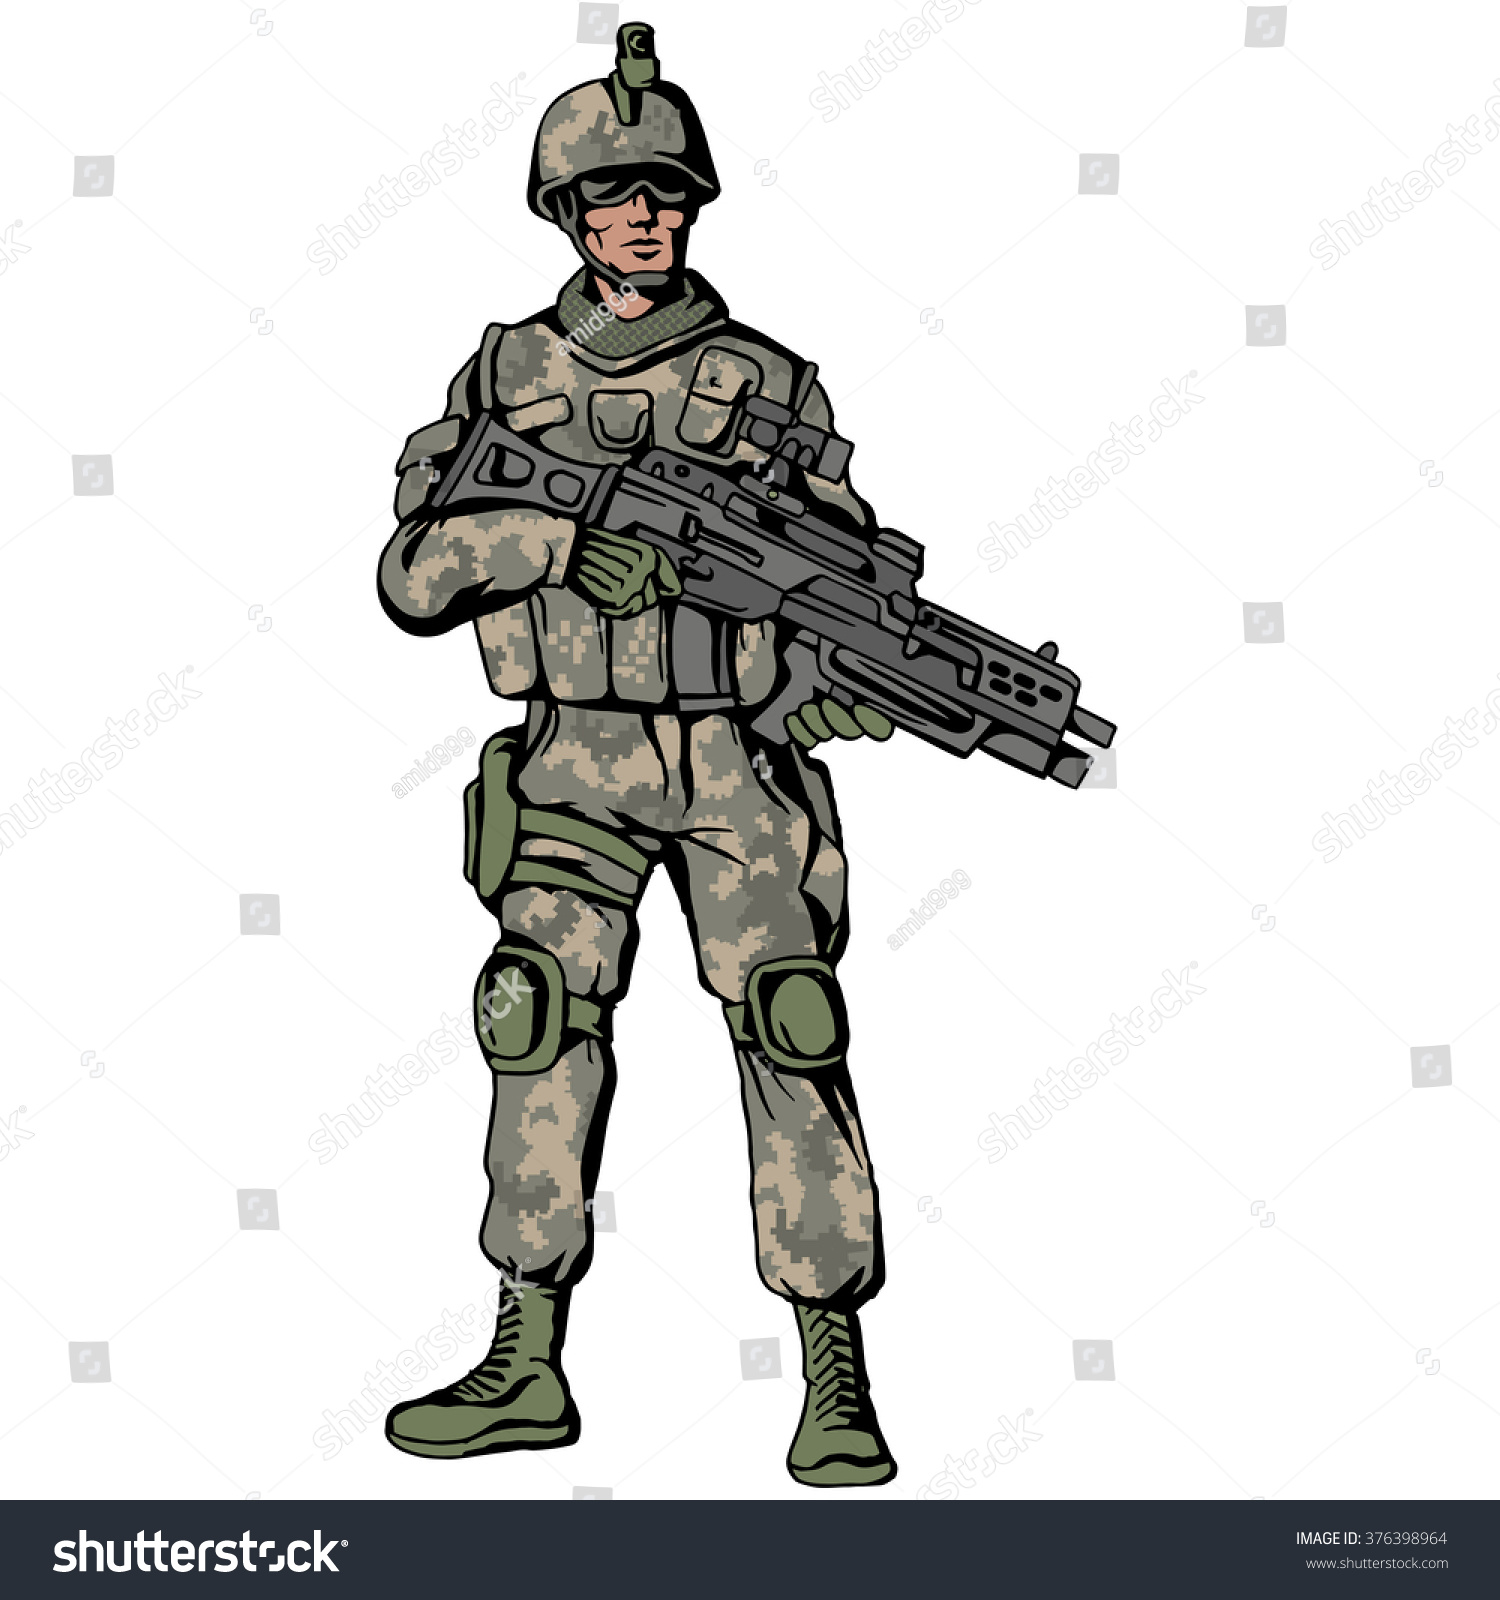 Clip Art Of Military Soldiers Creed